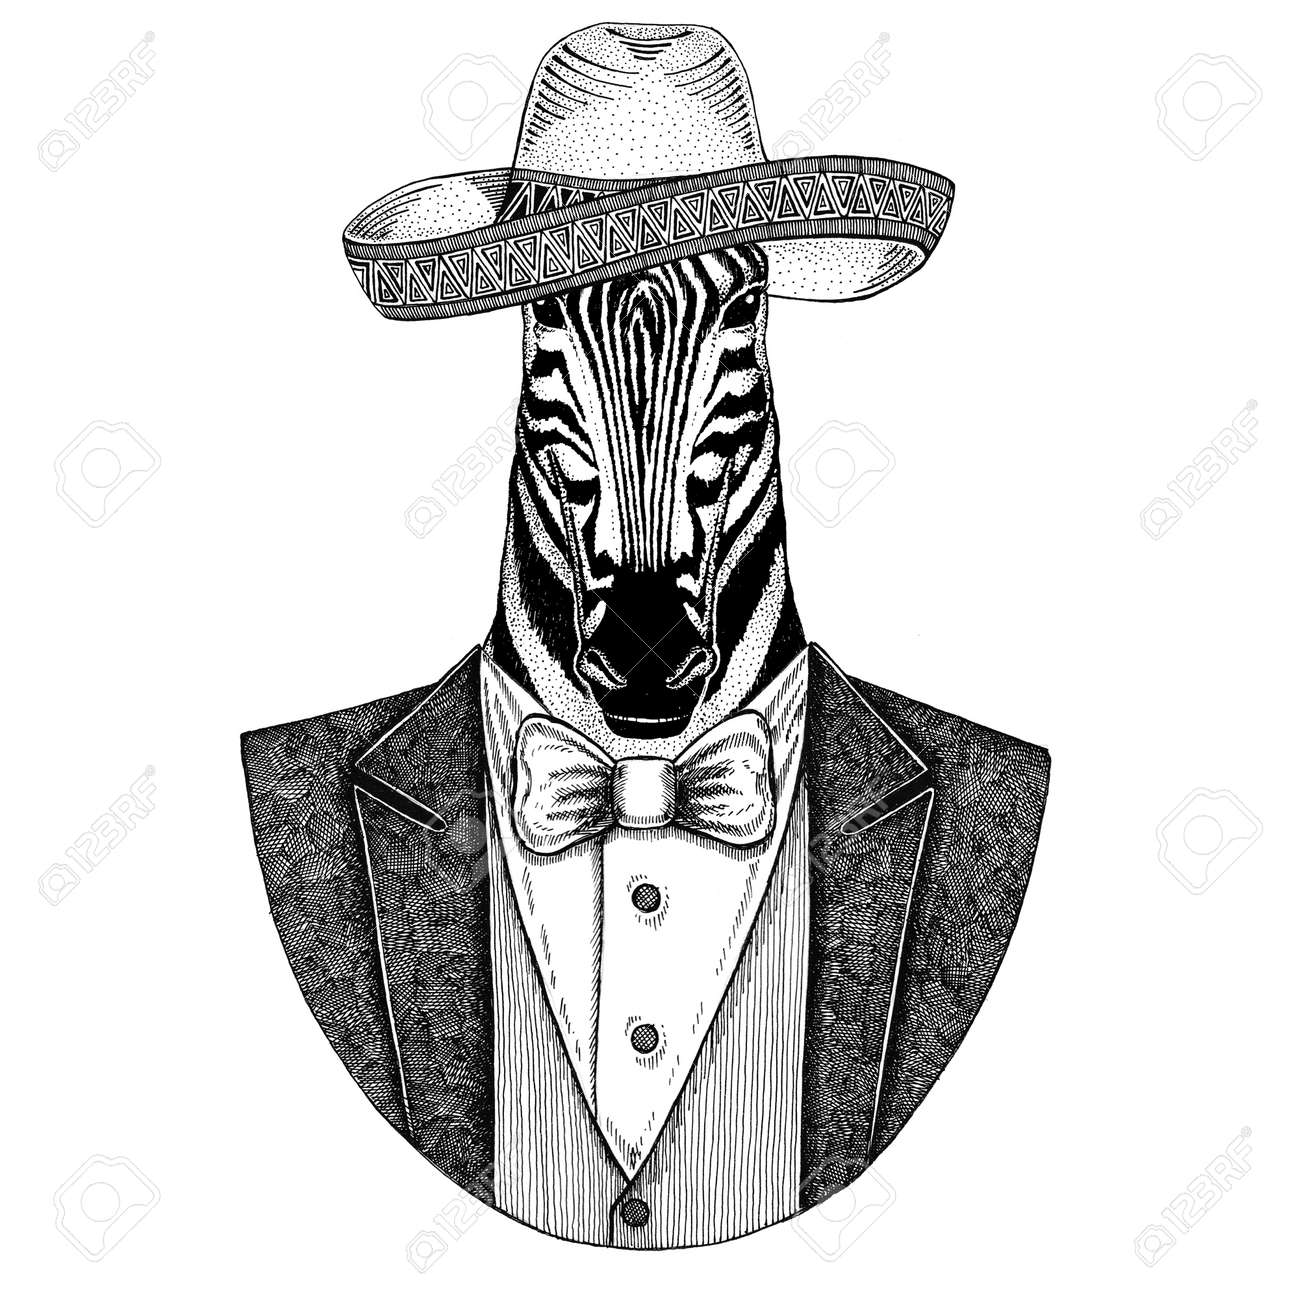 1f0c8334d Zebra Horse Wild animal wearing Sombrero - traditional mexican hat Hand  drawn illustration for tattoo